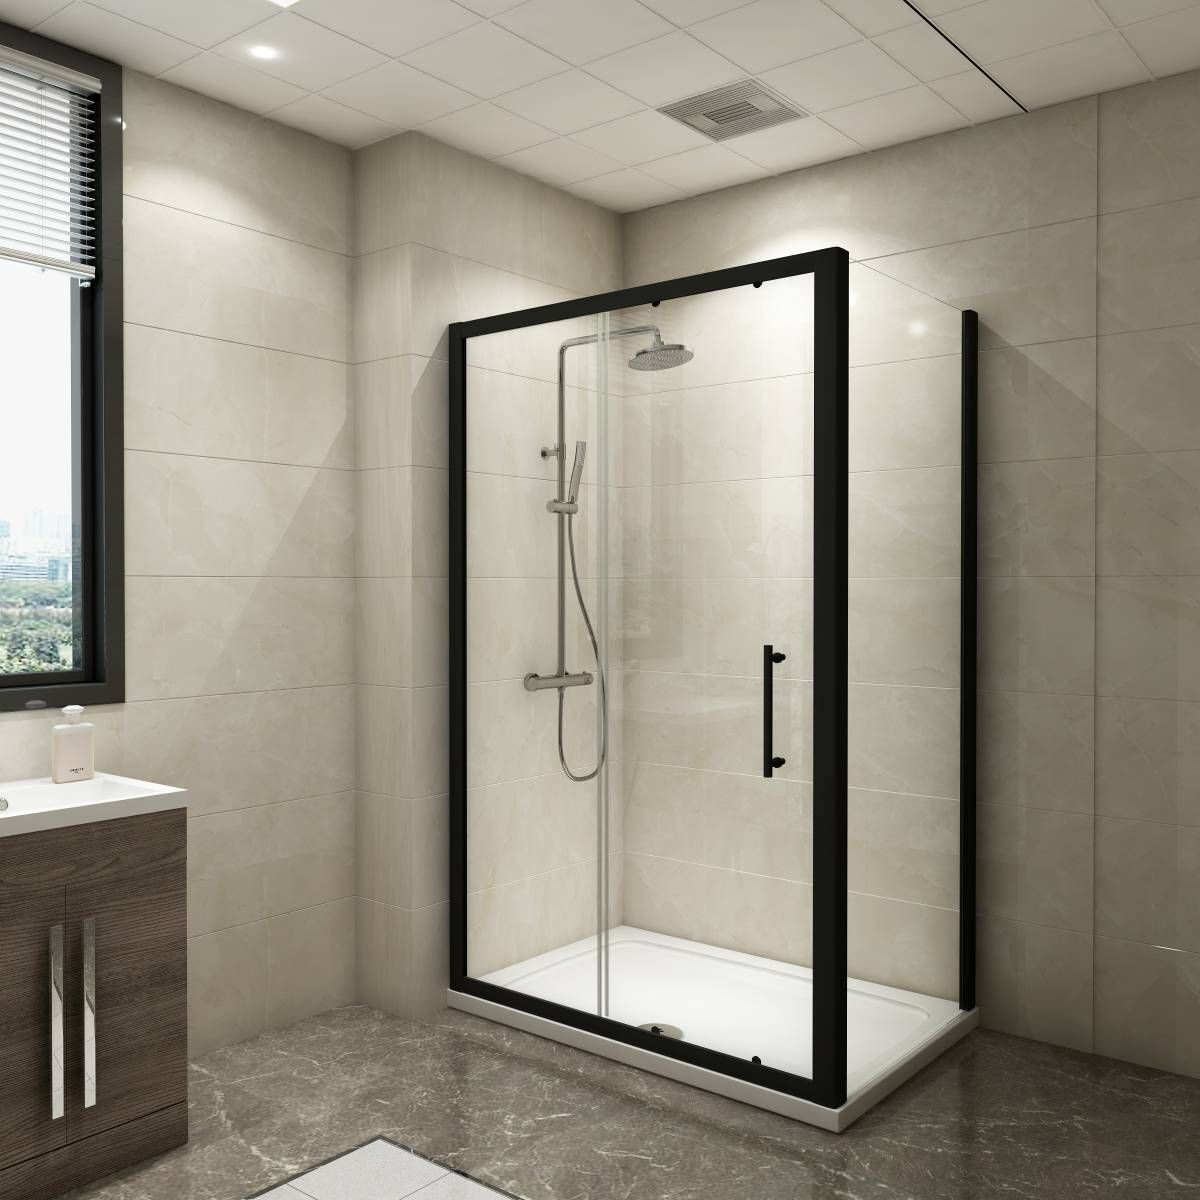 Want A Gleaming Shower Screen Reuse A Dryer Sheet By Adding A Few Drops Of Water To Clean It Dryer Sheets A Shower Enclosure Clean Shower Doors Shower Doors